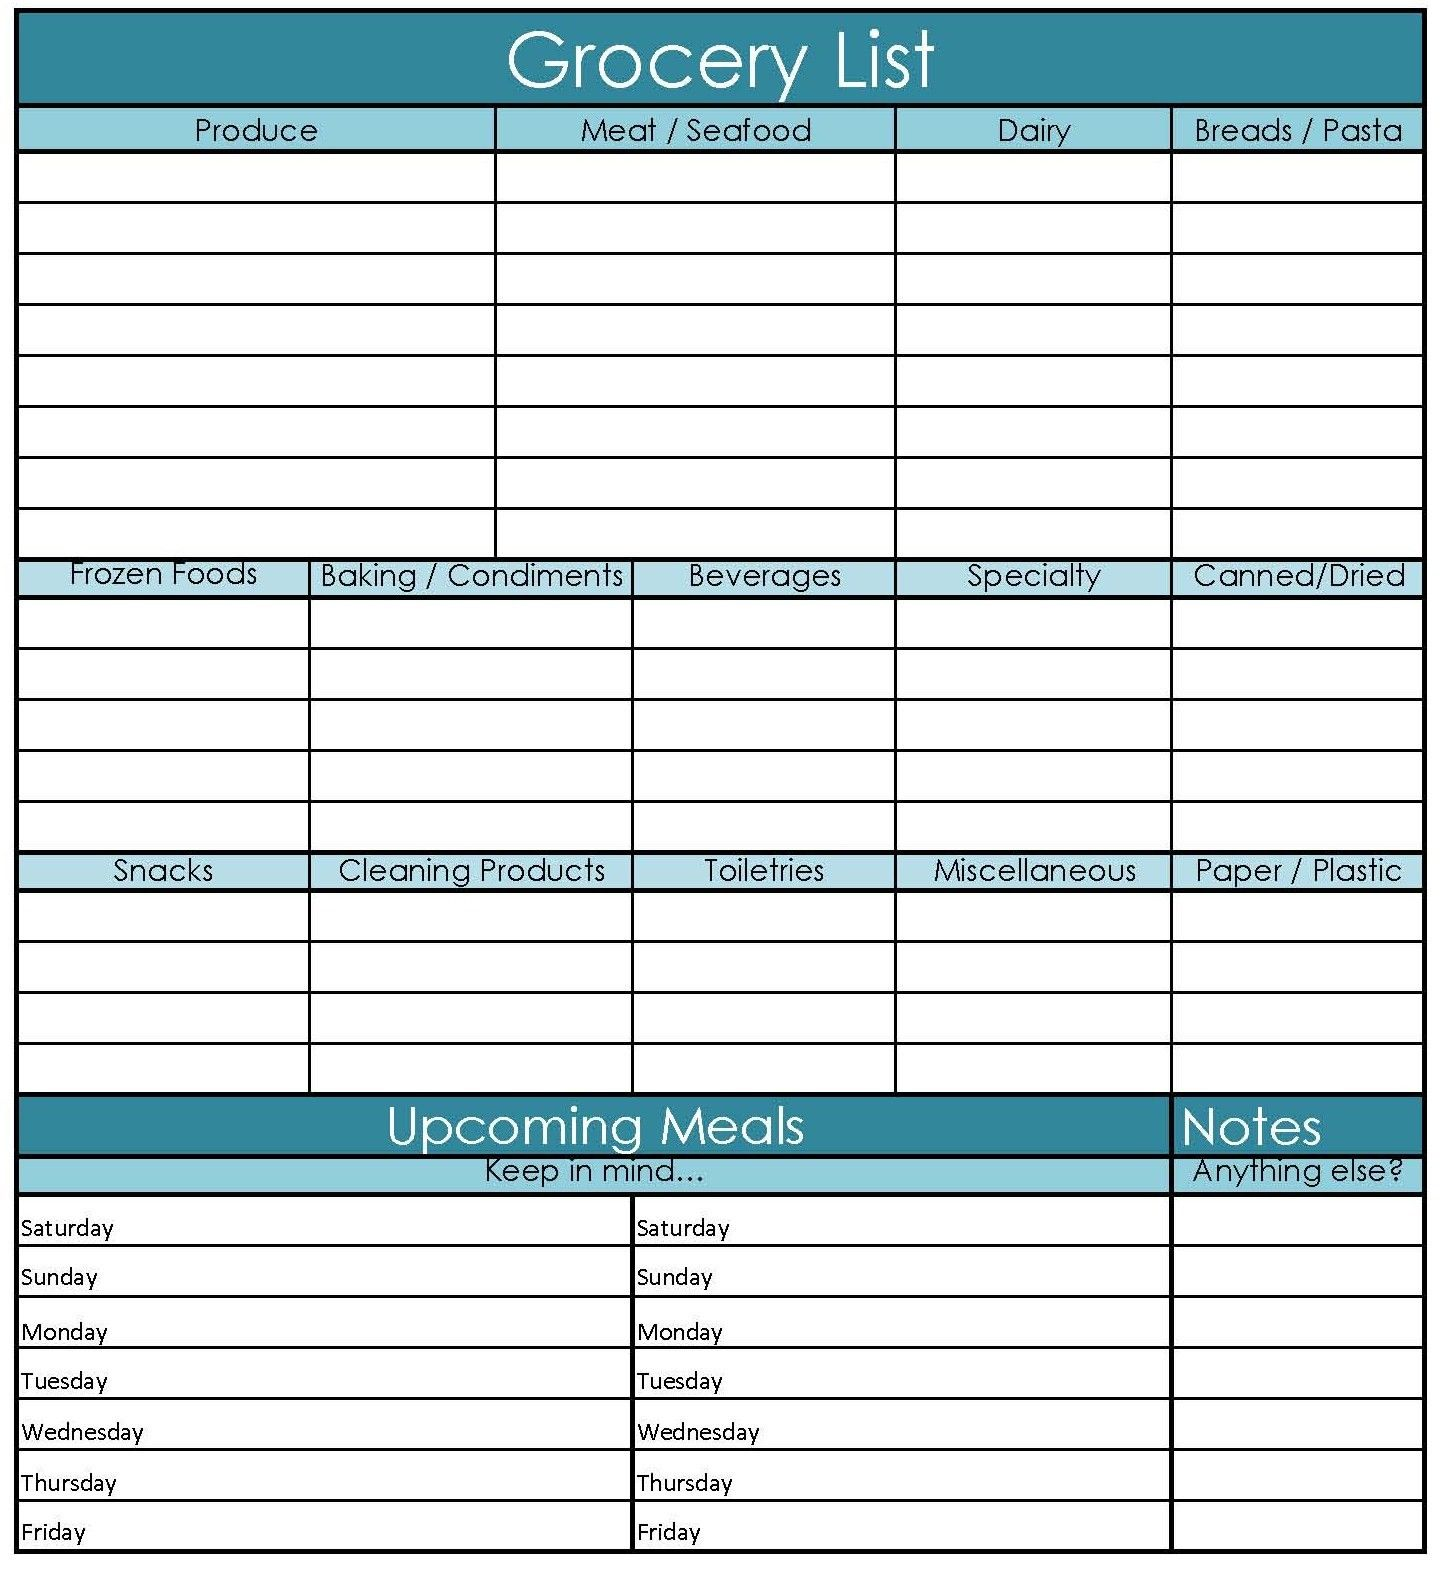 Printable Grocery Shopping List And Meal Planner.  Grocery List Template Excel Free Download